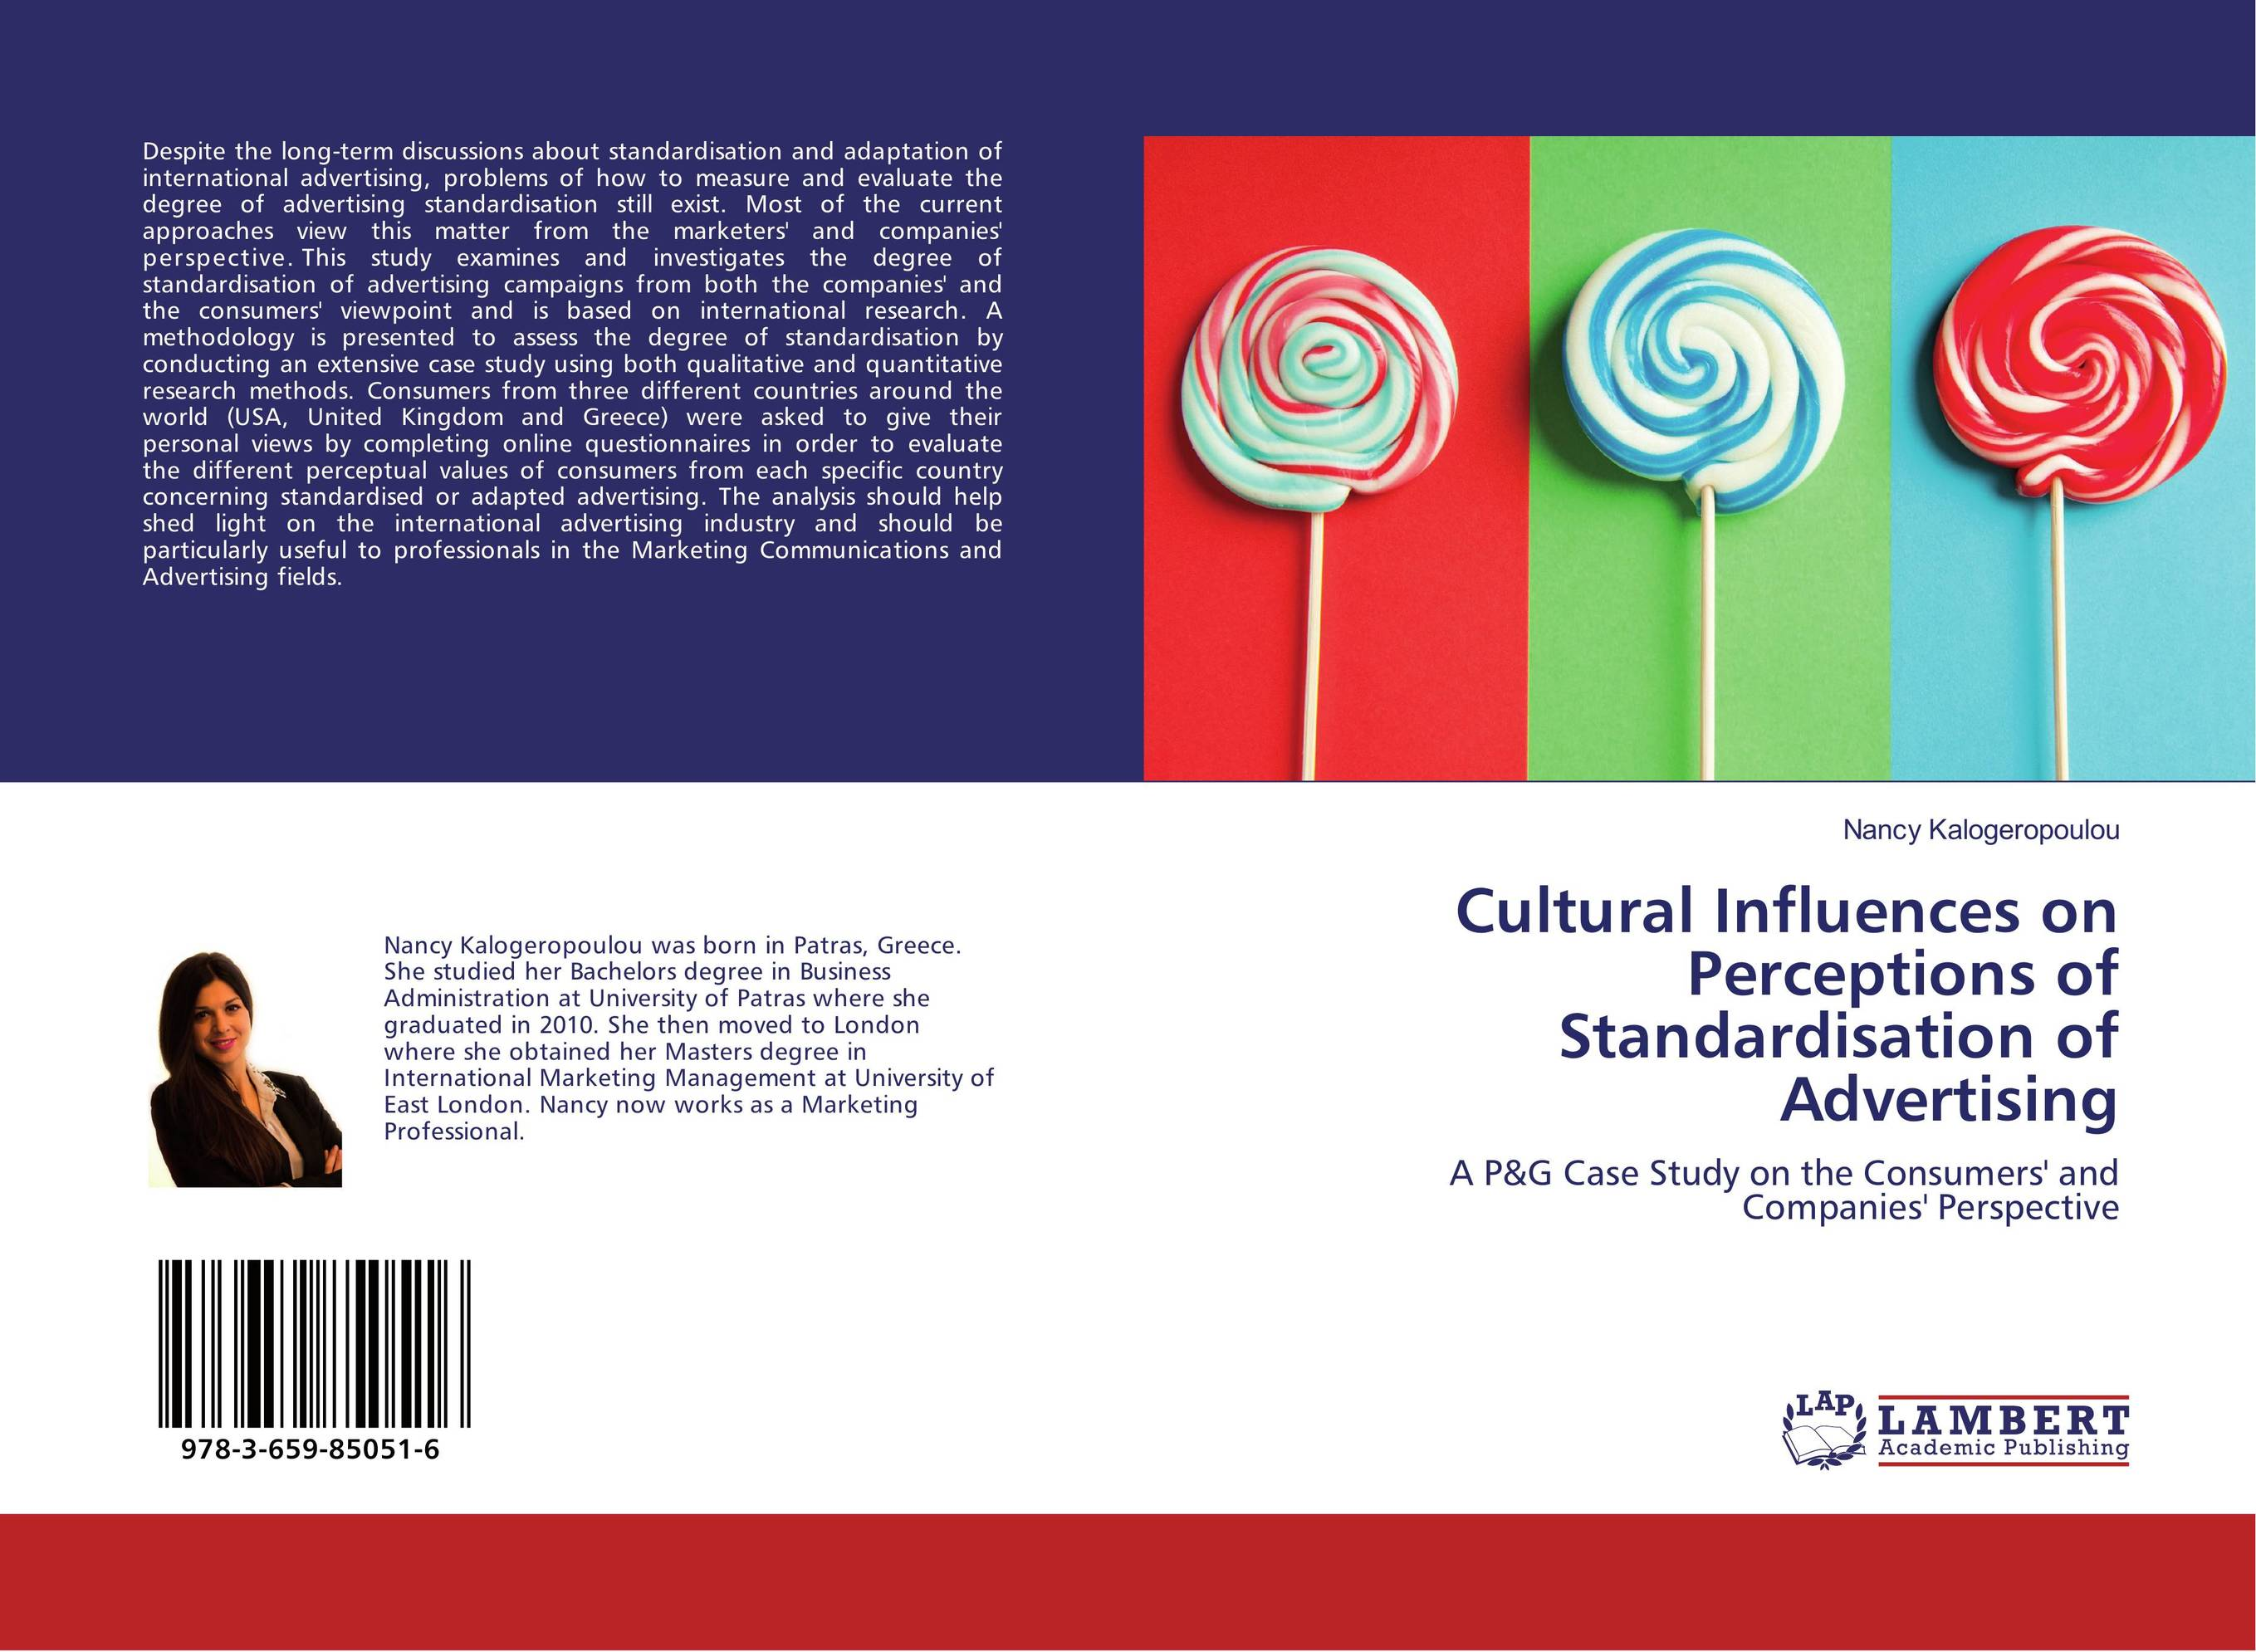 Cultural Influences on Perceptions of Standardisation of Advertising